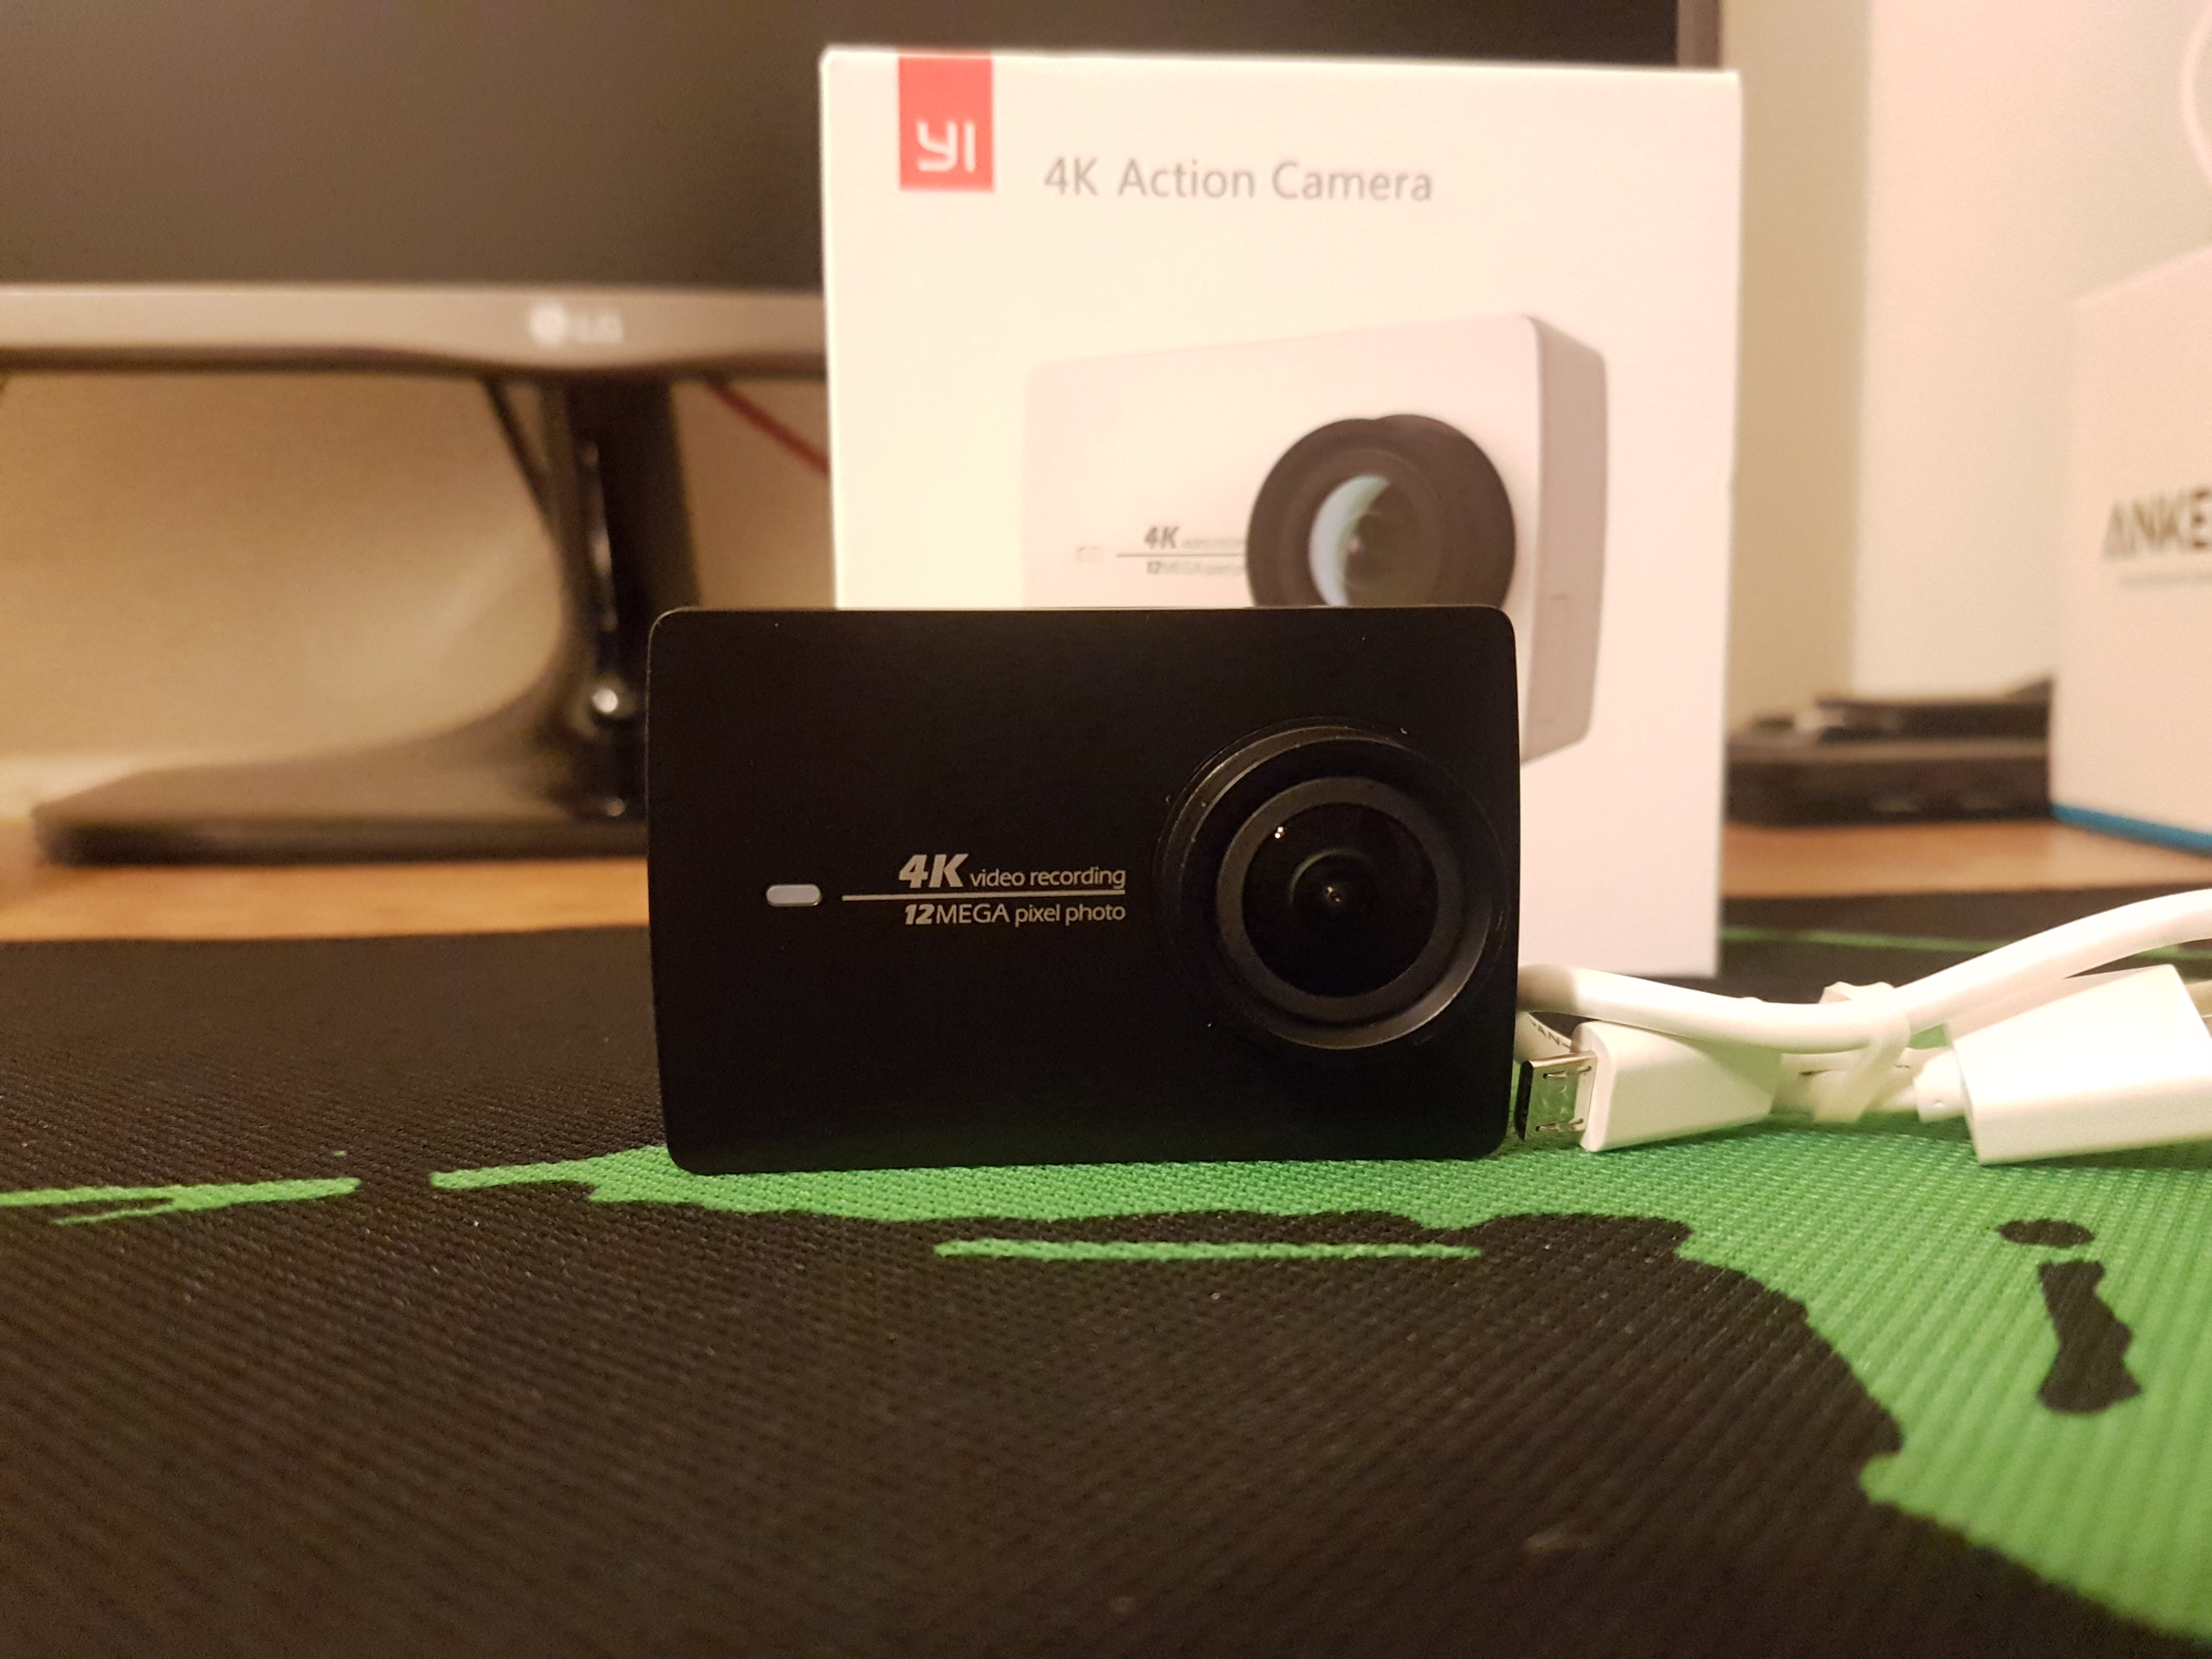 Xiaomi Yi 2 4k Camera Kelshitech Ii Action Let Me Start By Saying That Im Absolutely In Love With This Little Thing I Ordered The A While Back Through Aliexpress